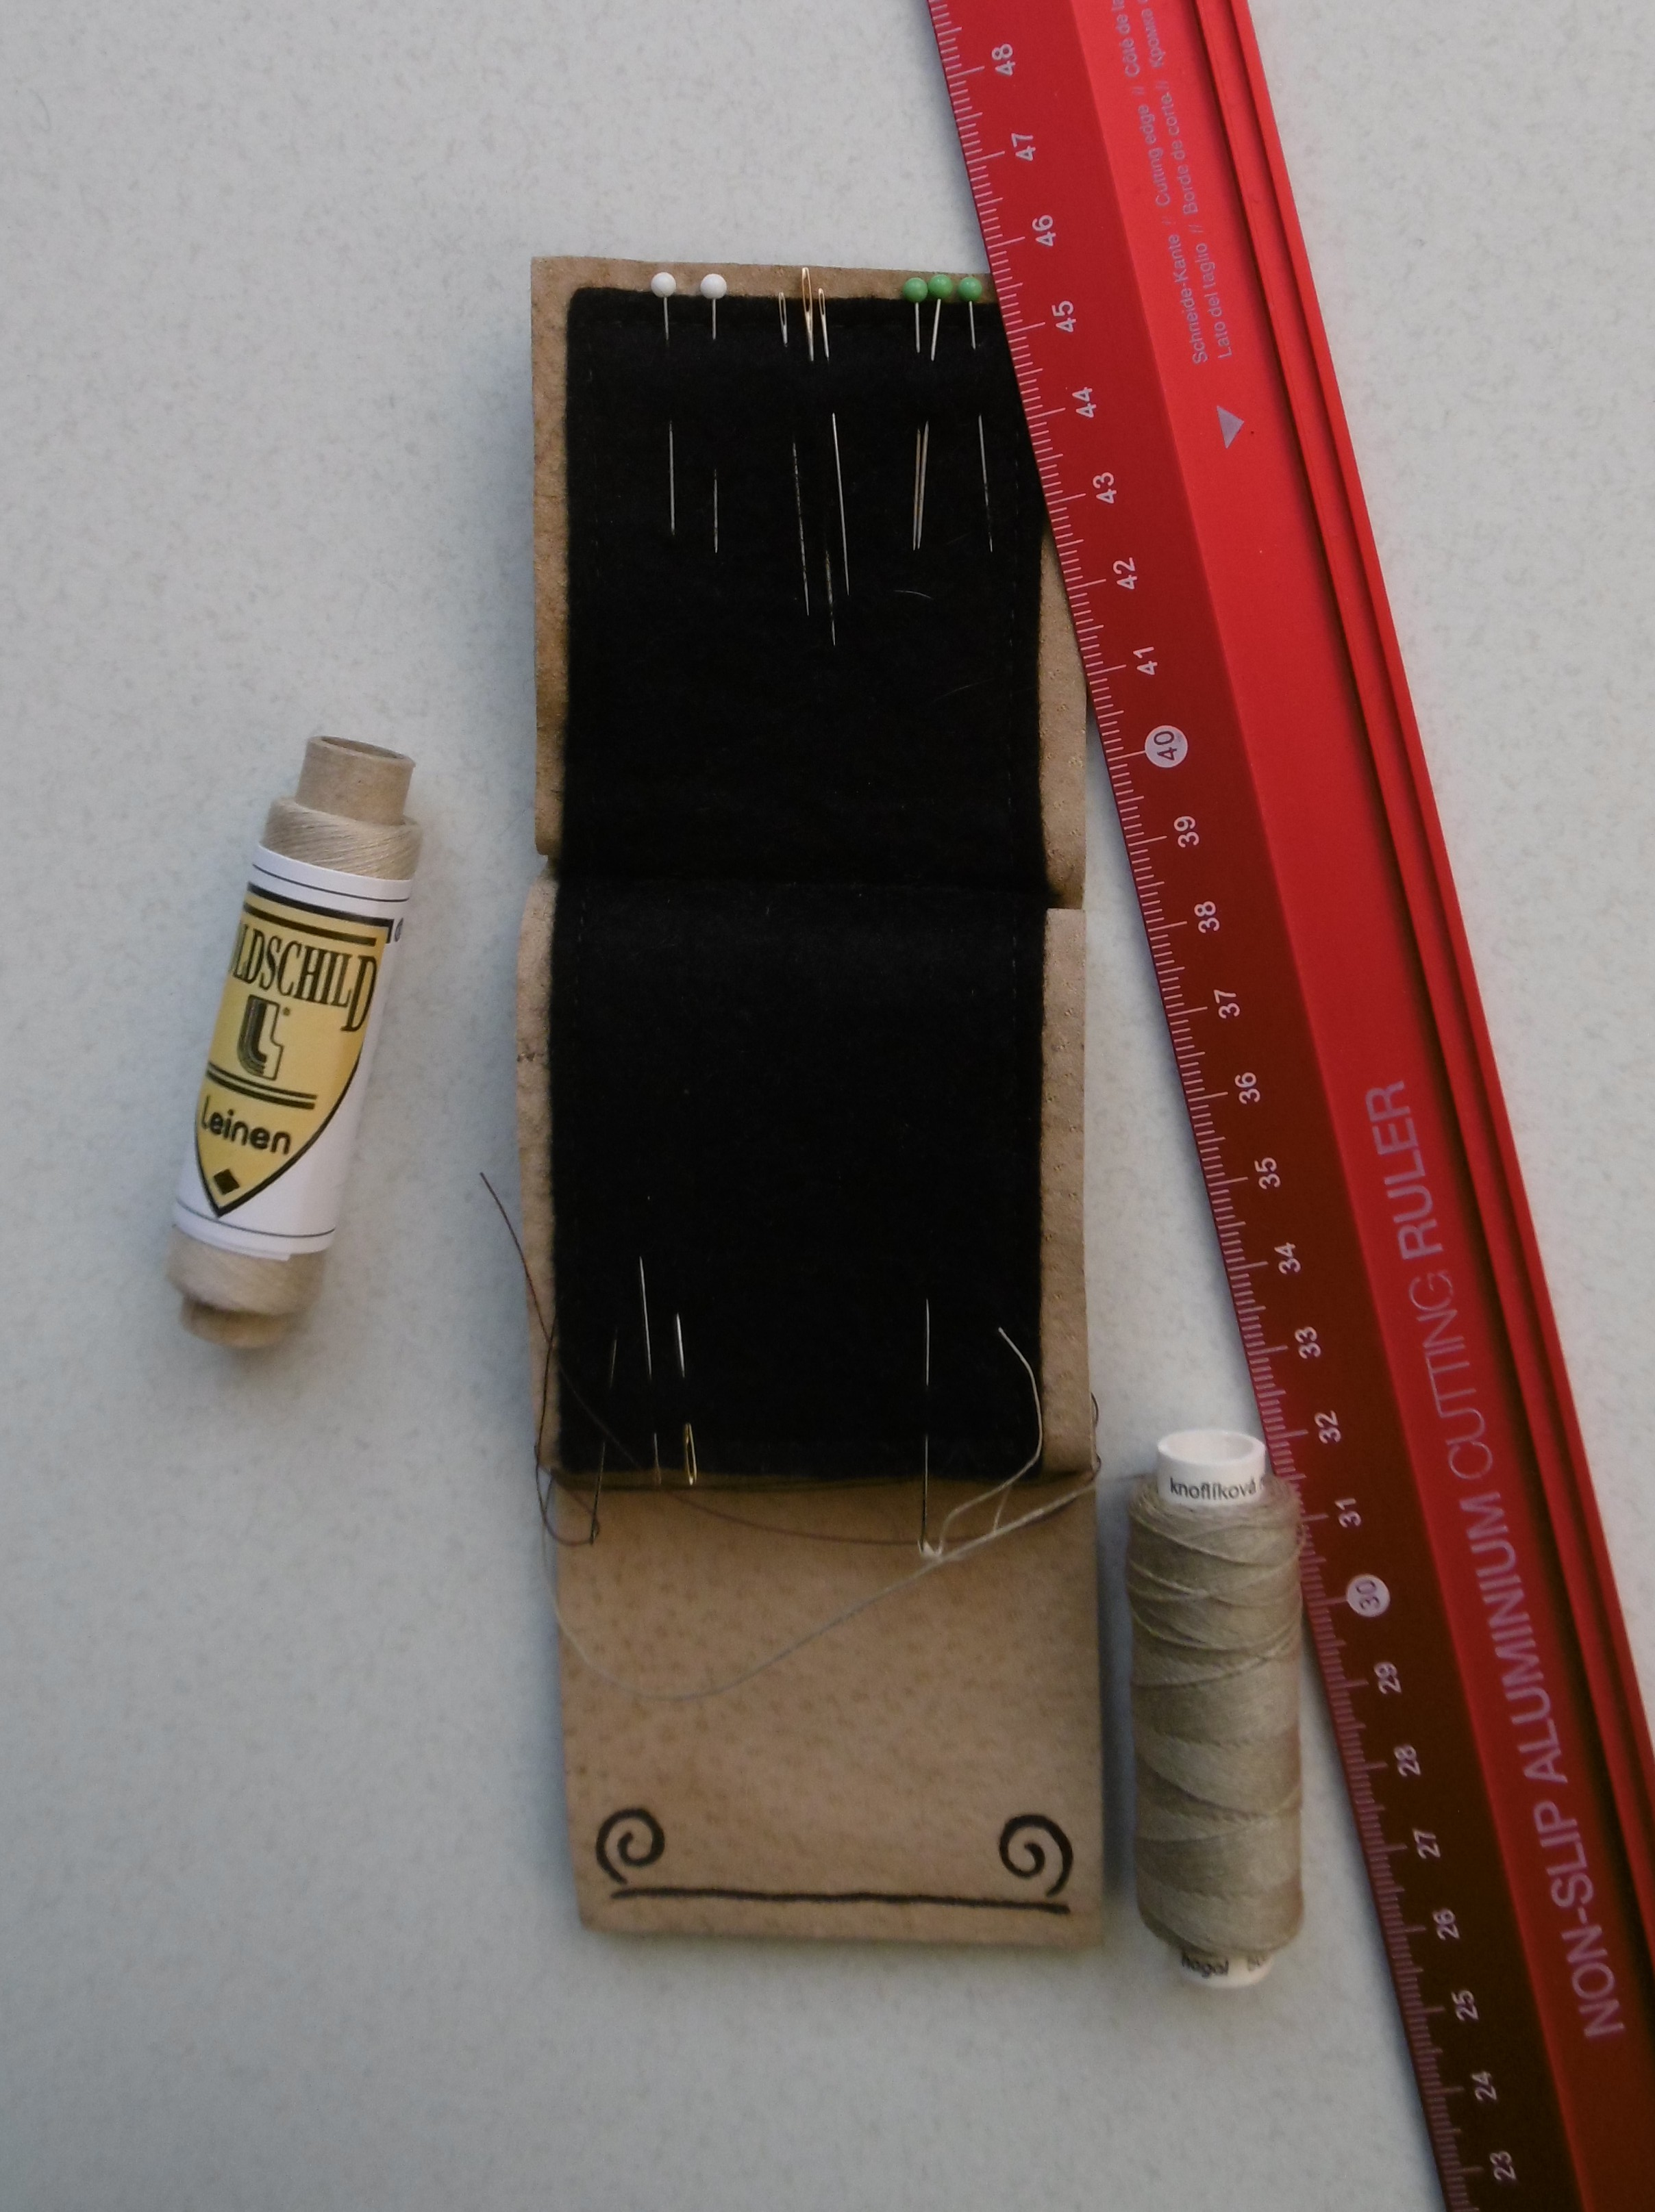 A case for pins and needles consisting of a flat piece of leather lined with felt